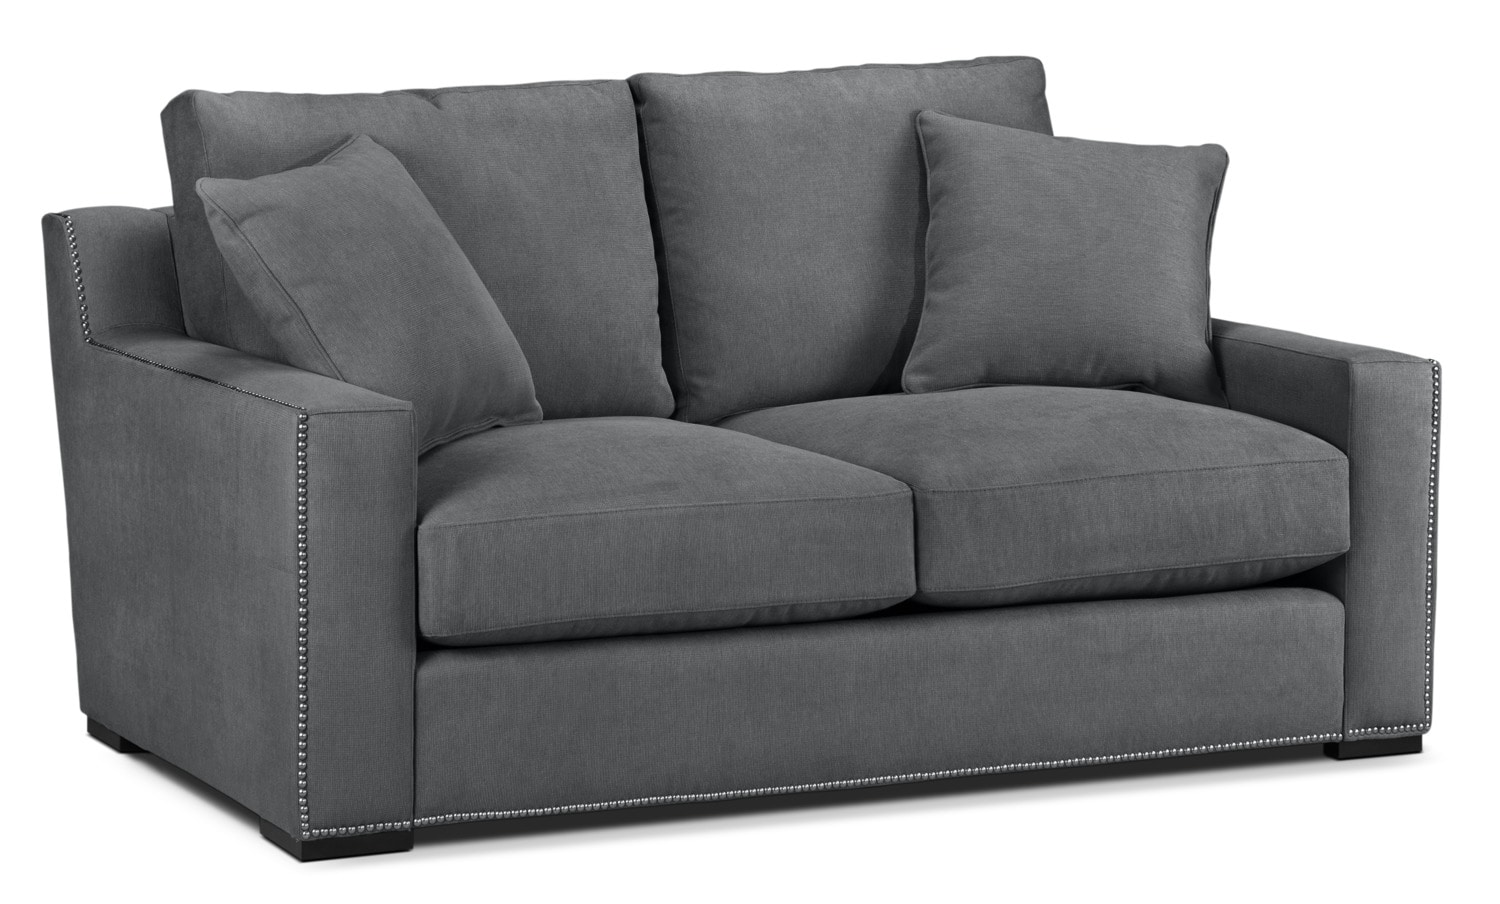 Ethan Loveseat - Charcoal